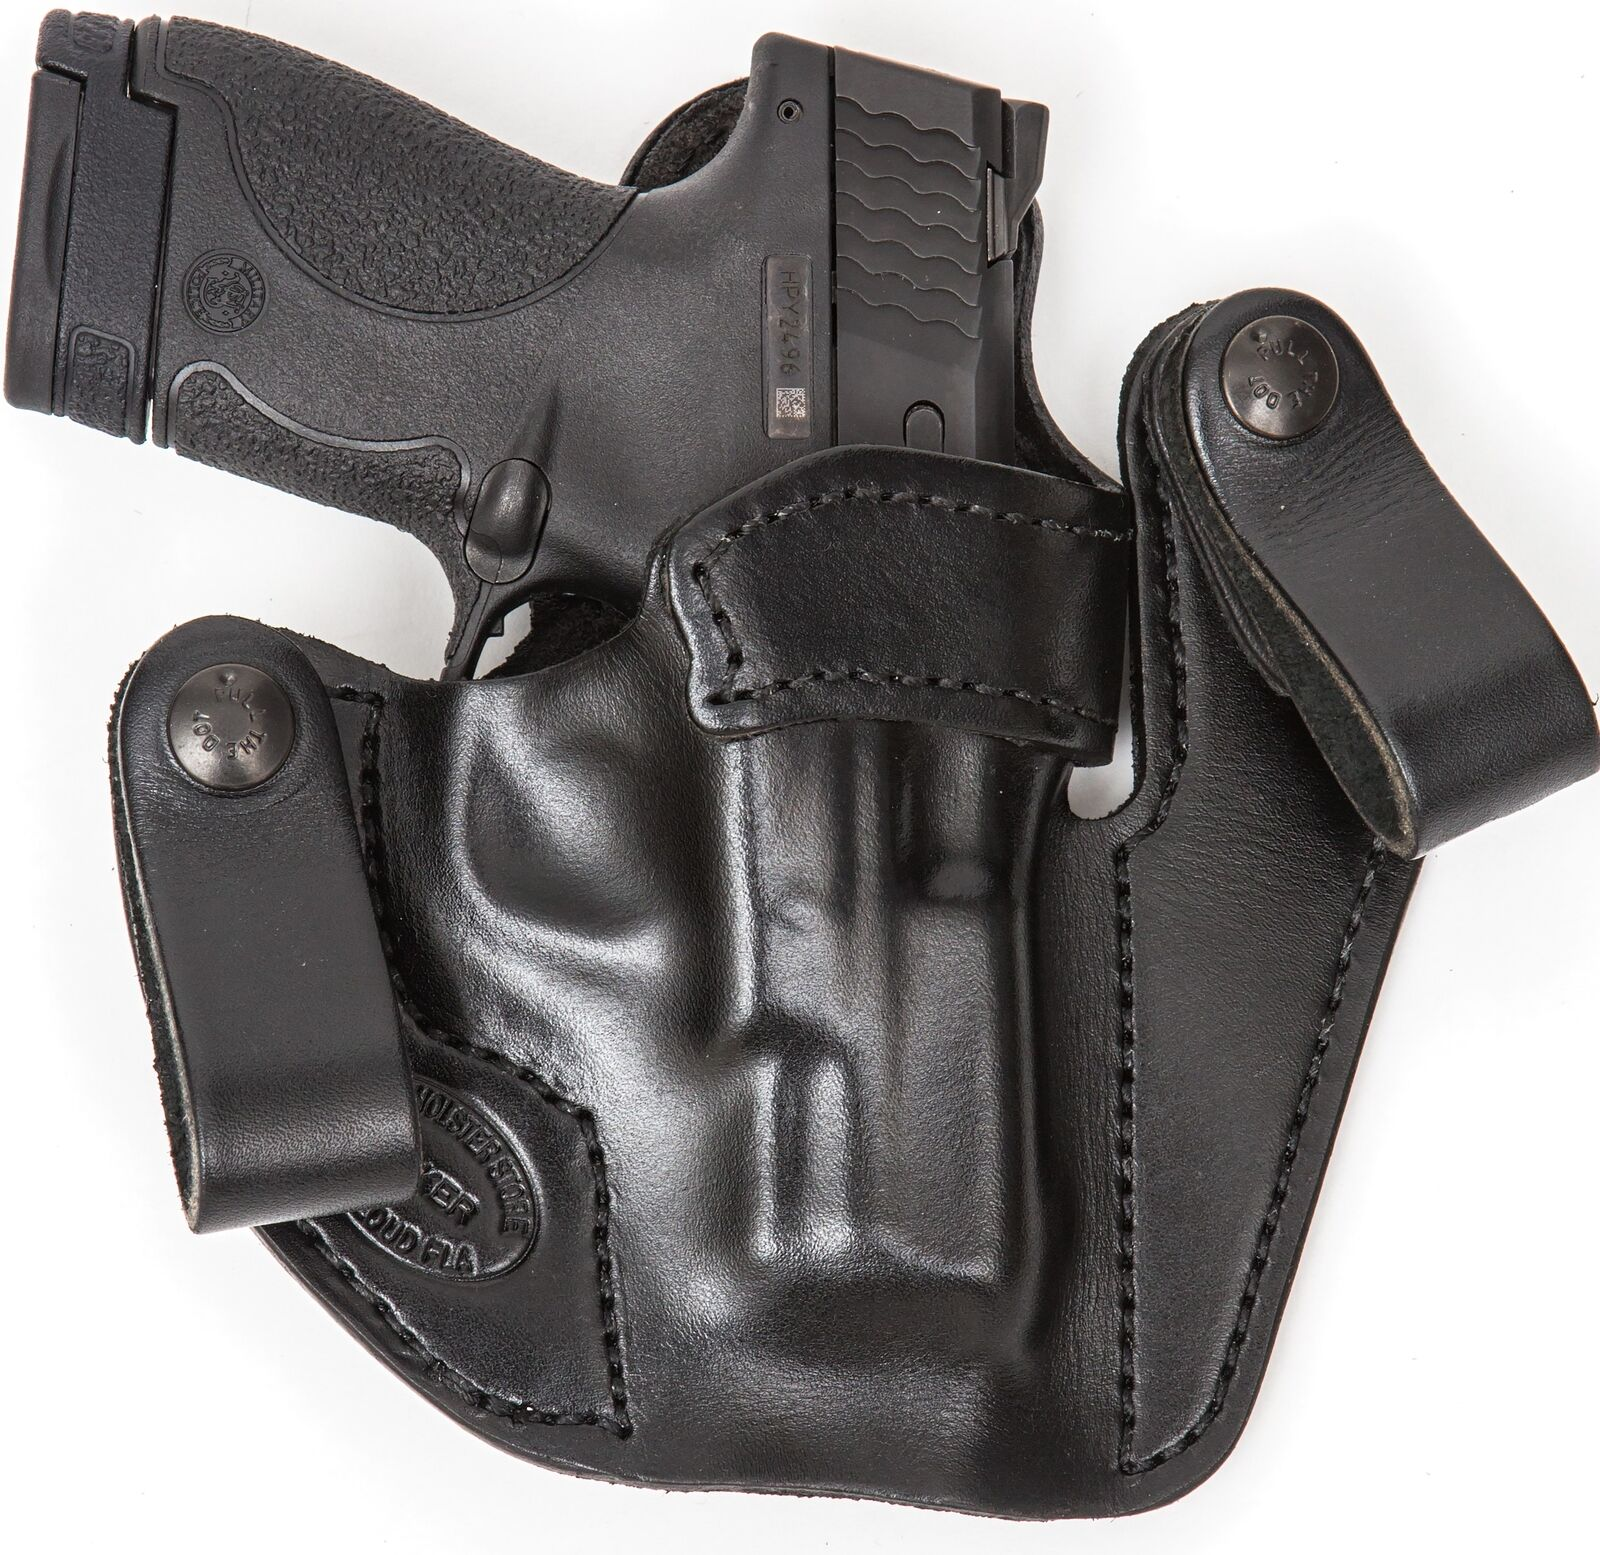 XTREME CARRY RH LH IWB Leather Gun Holster For Sig Sauer P238 w  CT Laserguard